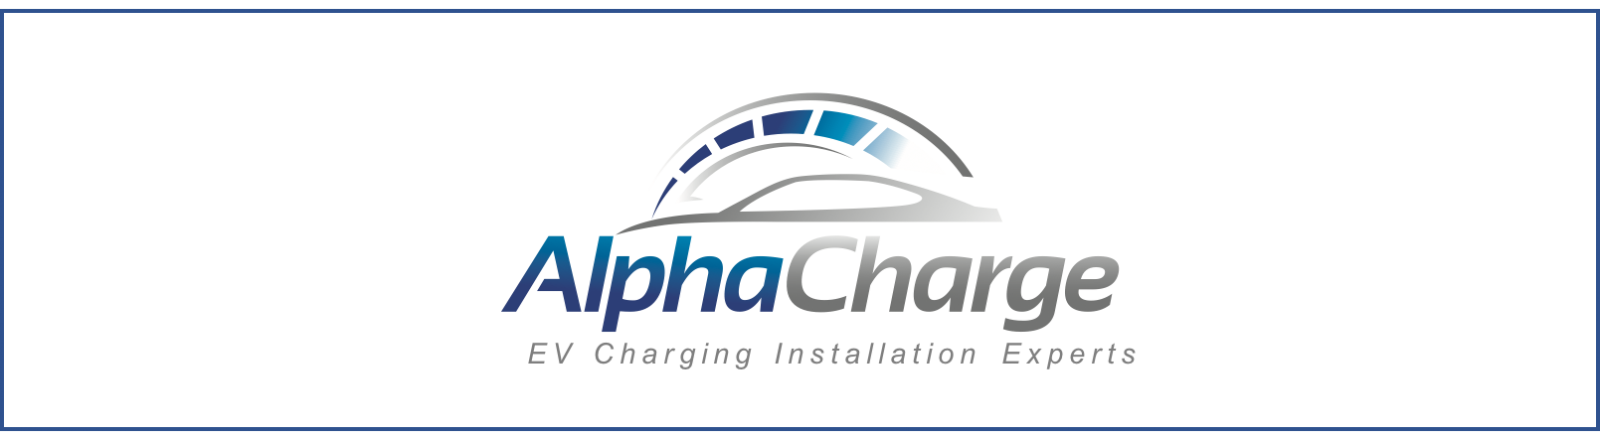 AlphaCharge